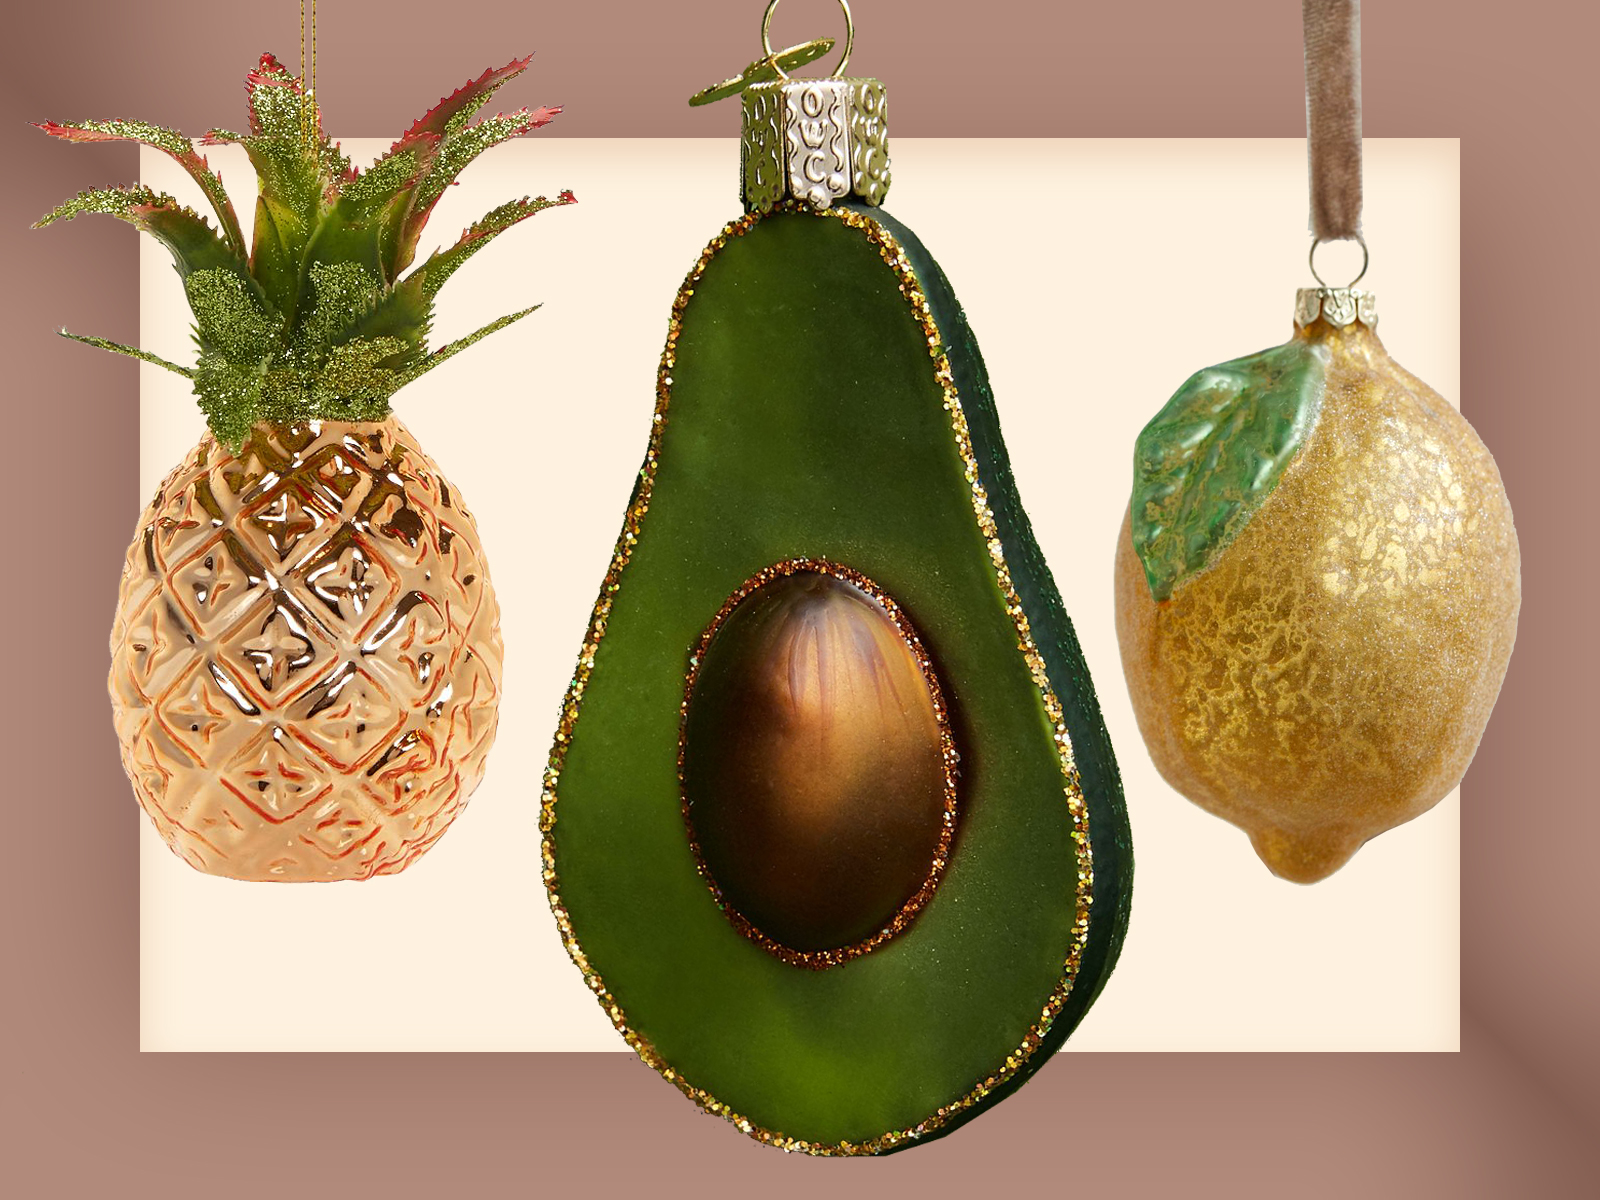 Food Ornaments Fruits and Vegetables